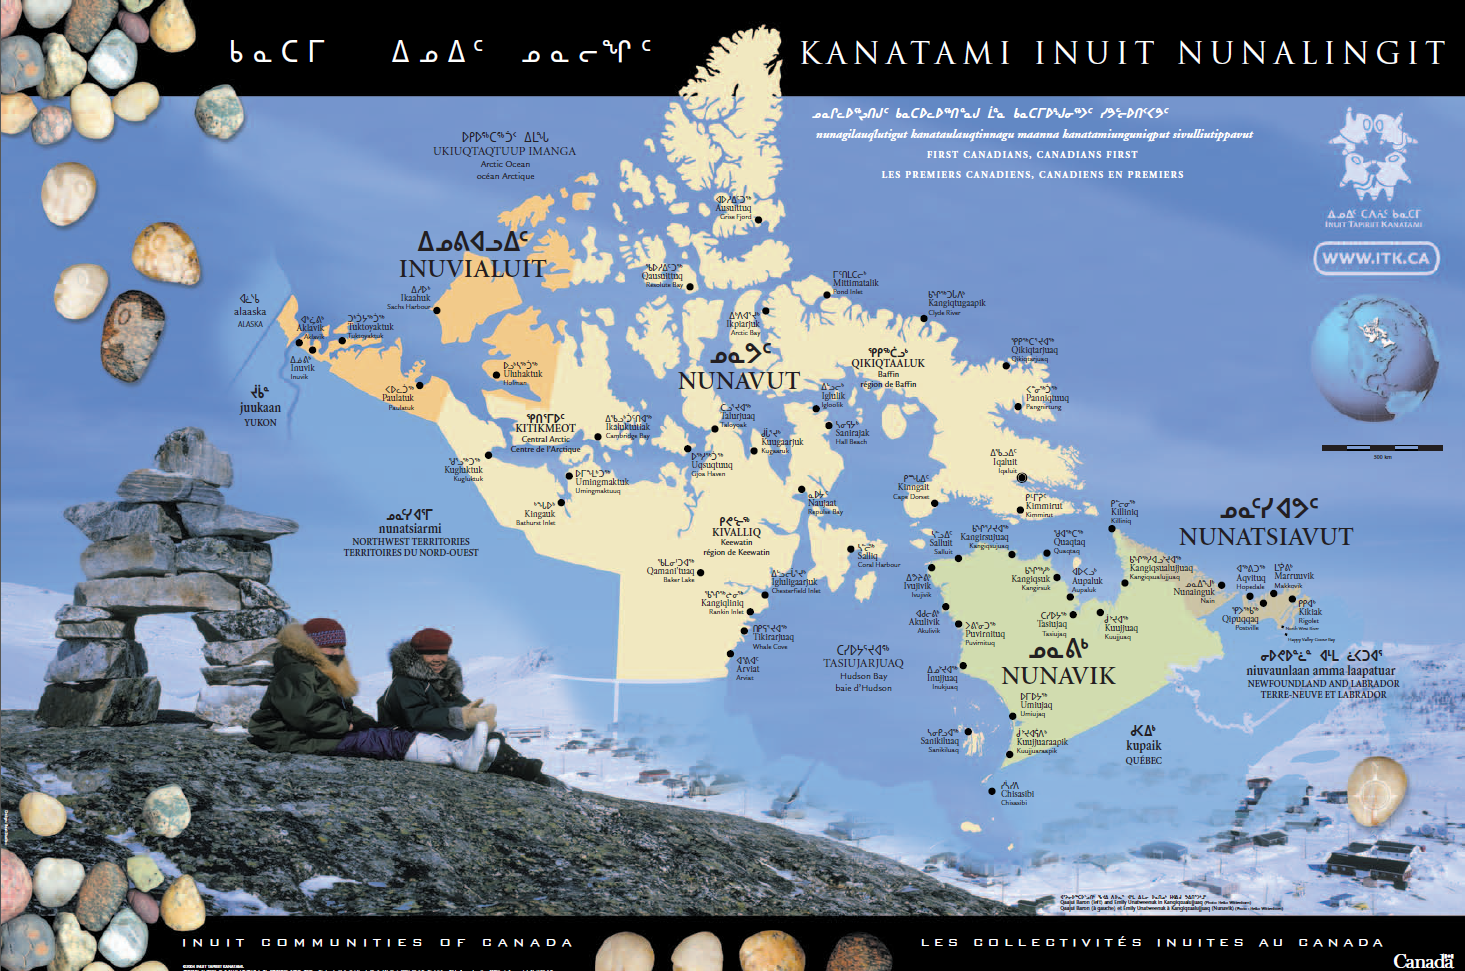 Iqaluit Canada Map.Inuit Communities Of Canada Map Inuit Tapiriit Kanatami